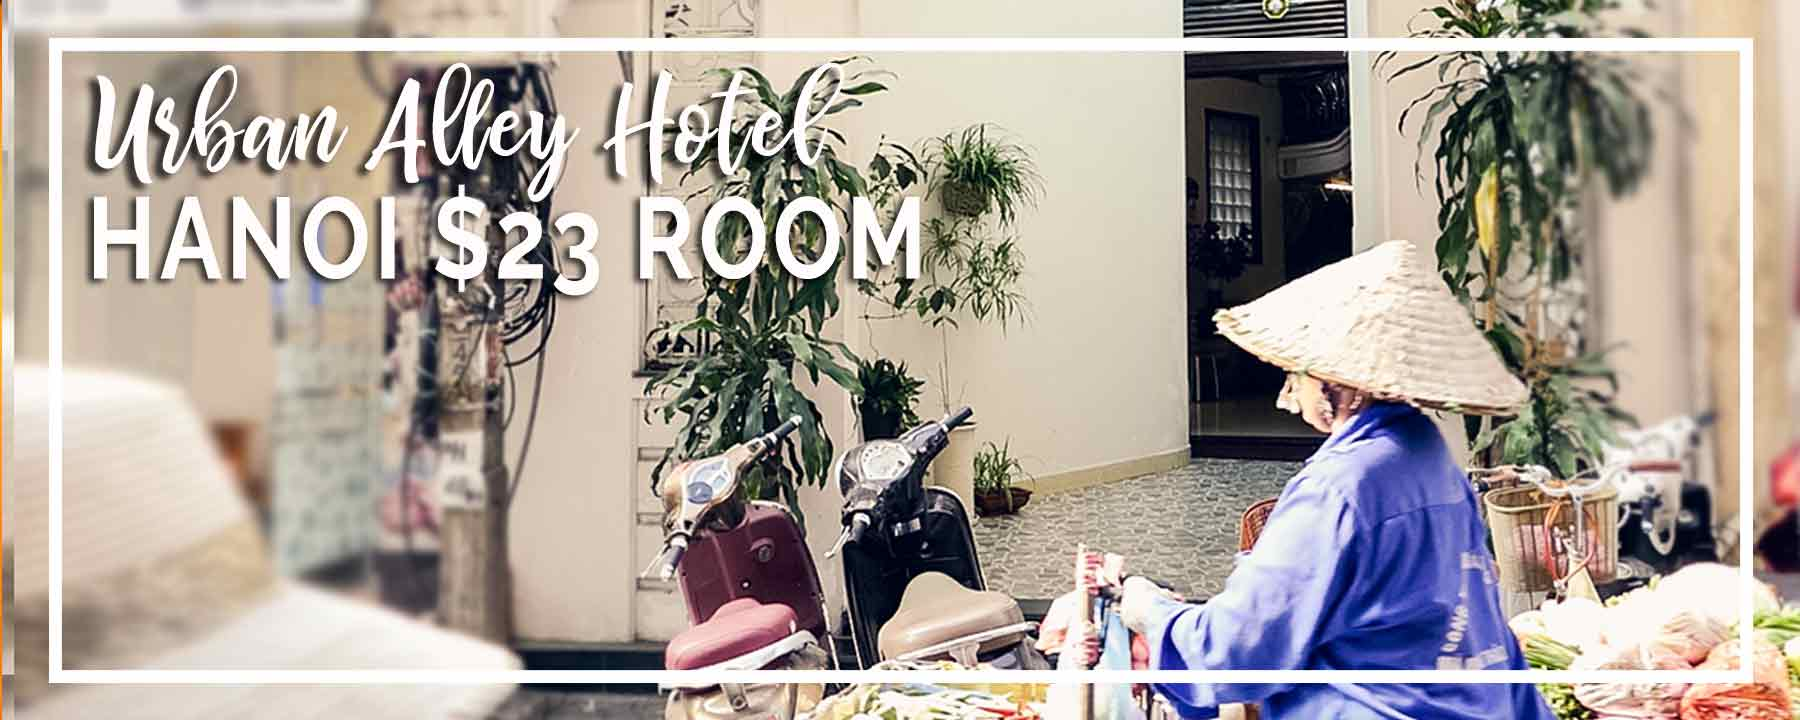 Budget Hanoi | $23 for Urban Alley Hotel Room, Downtown Heritage Area